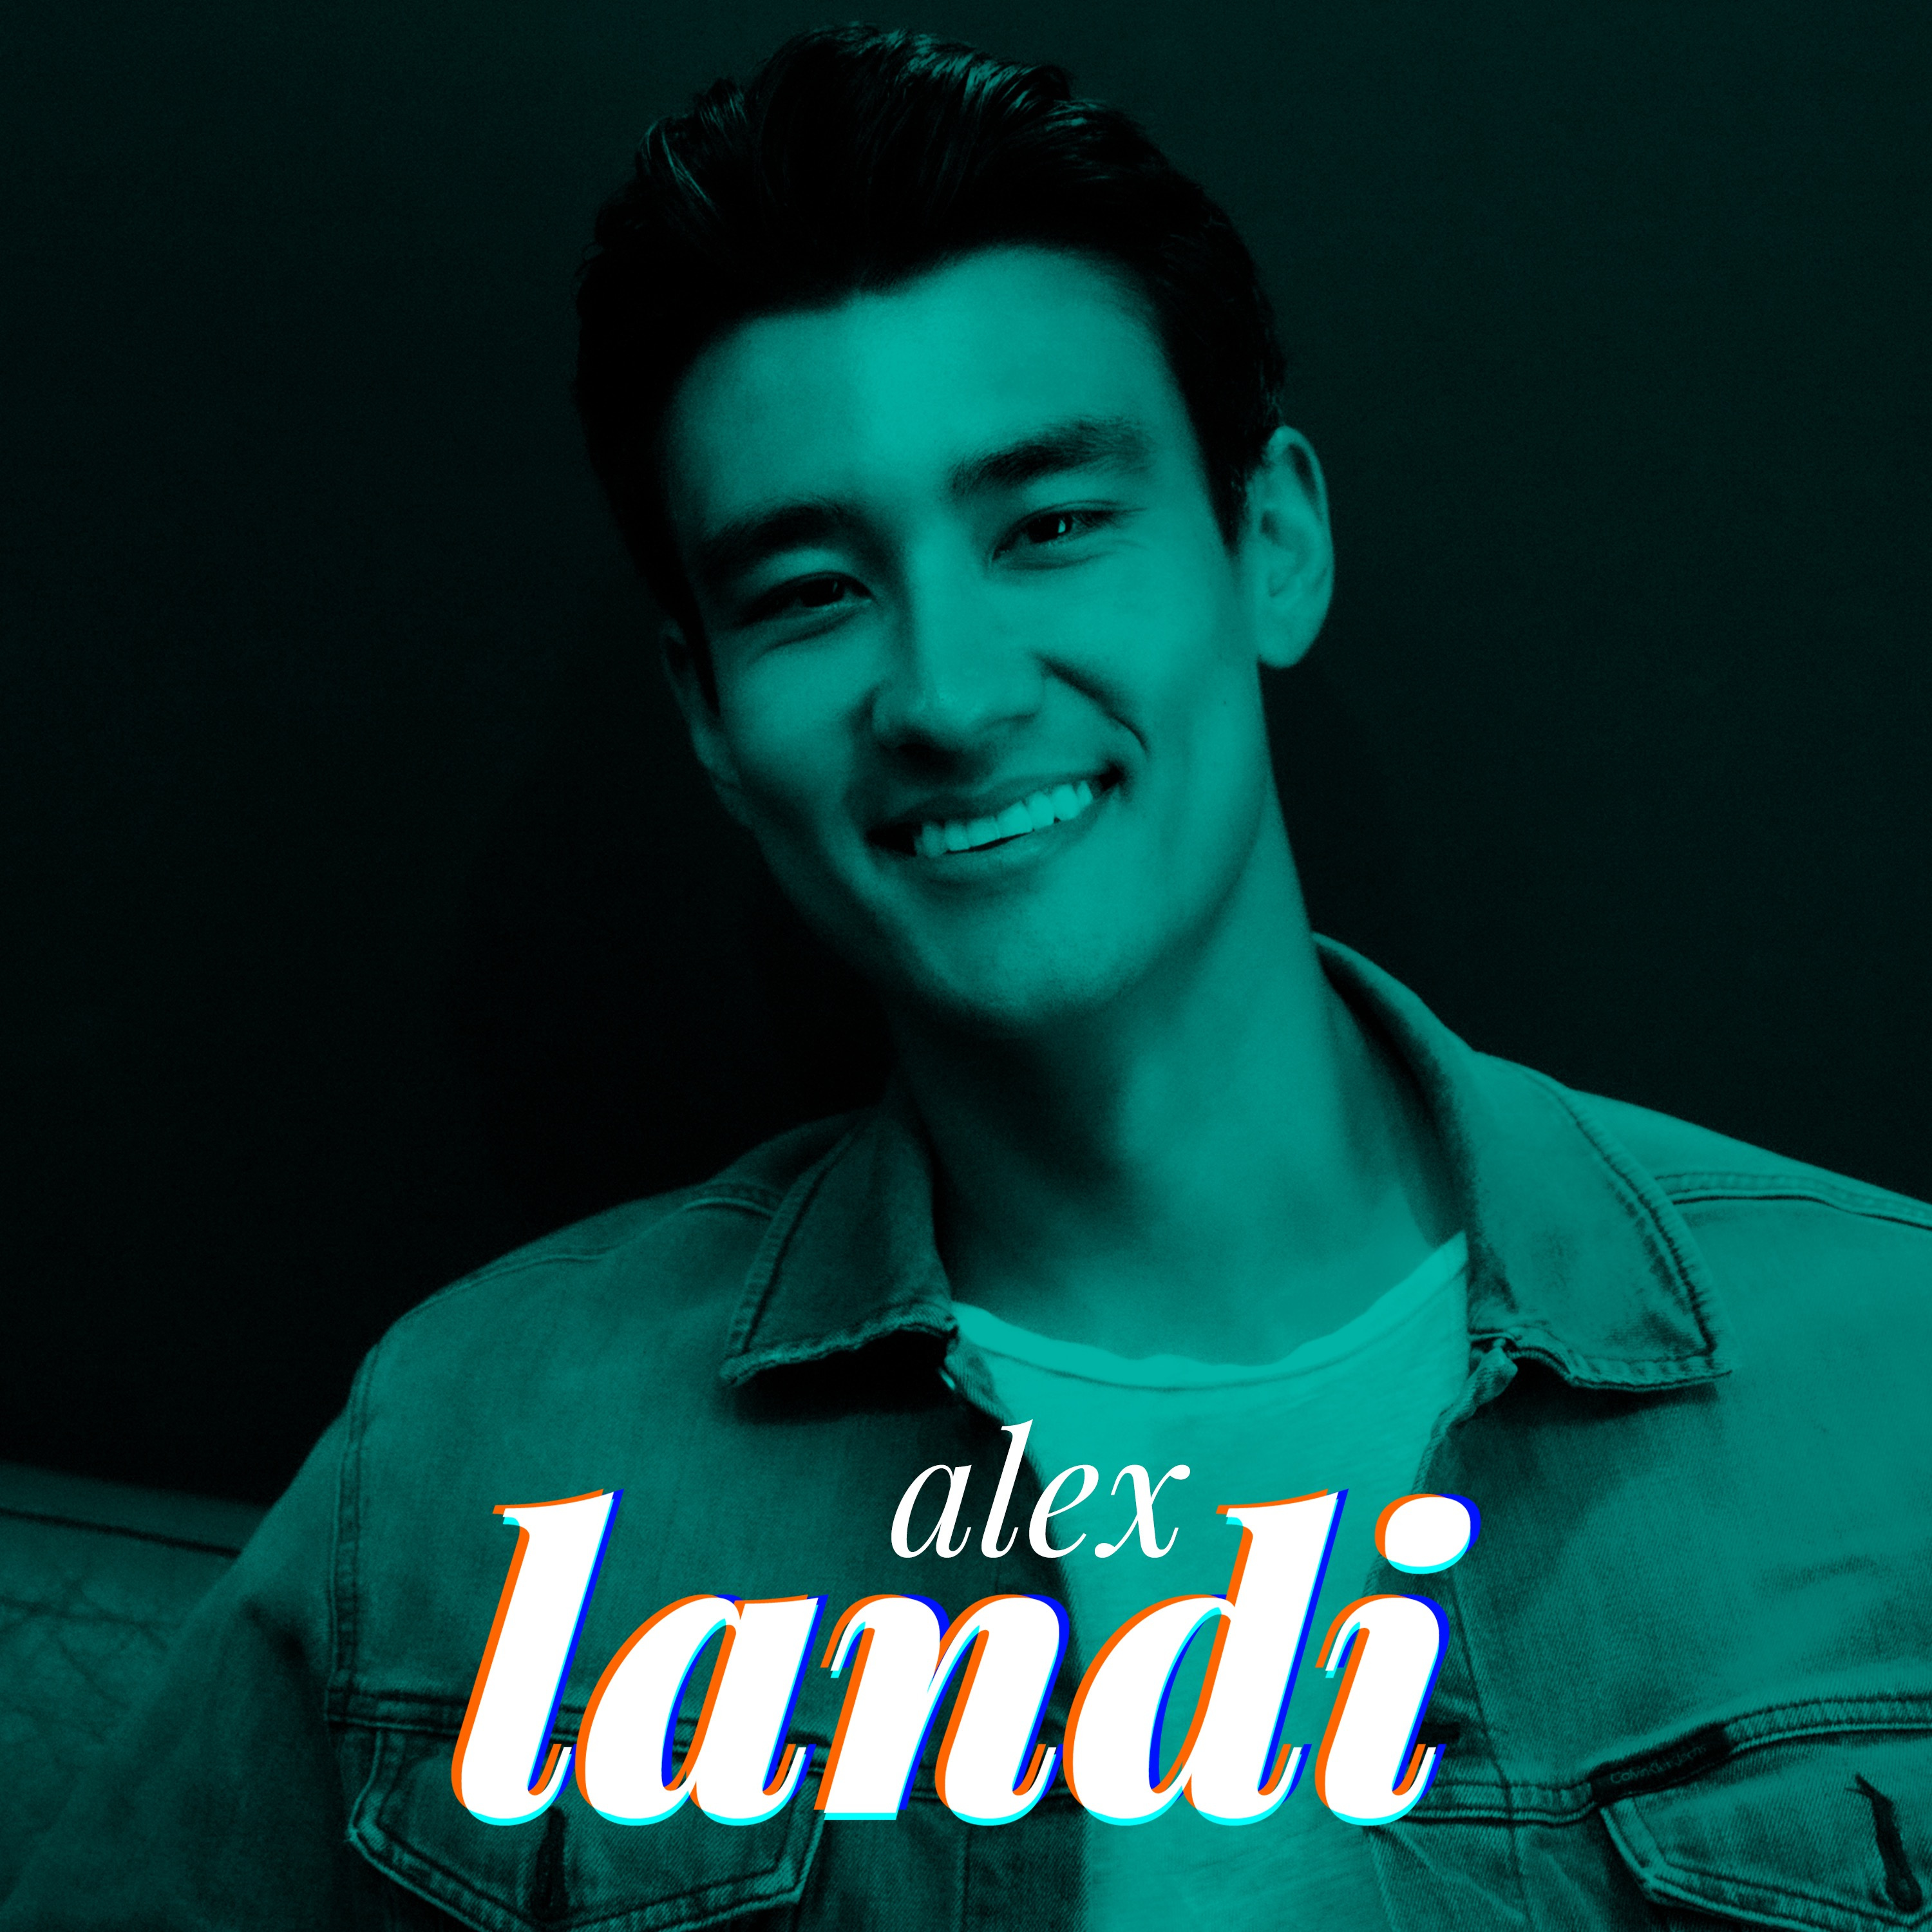 Alex Landi on identity, not being a stereotype, and stripping for the first time.